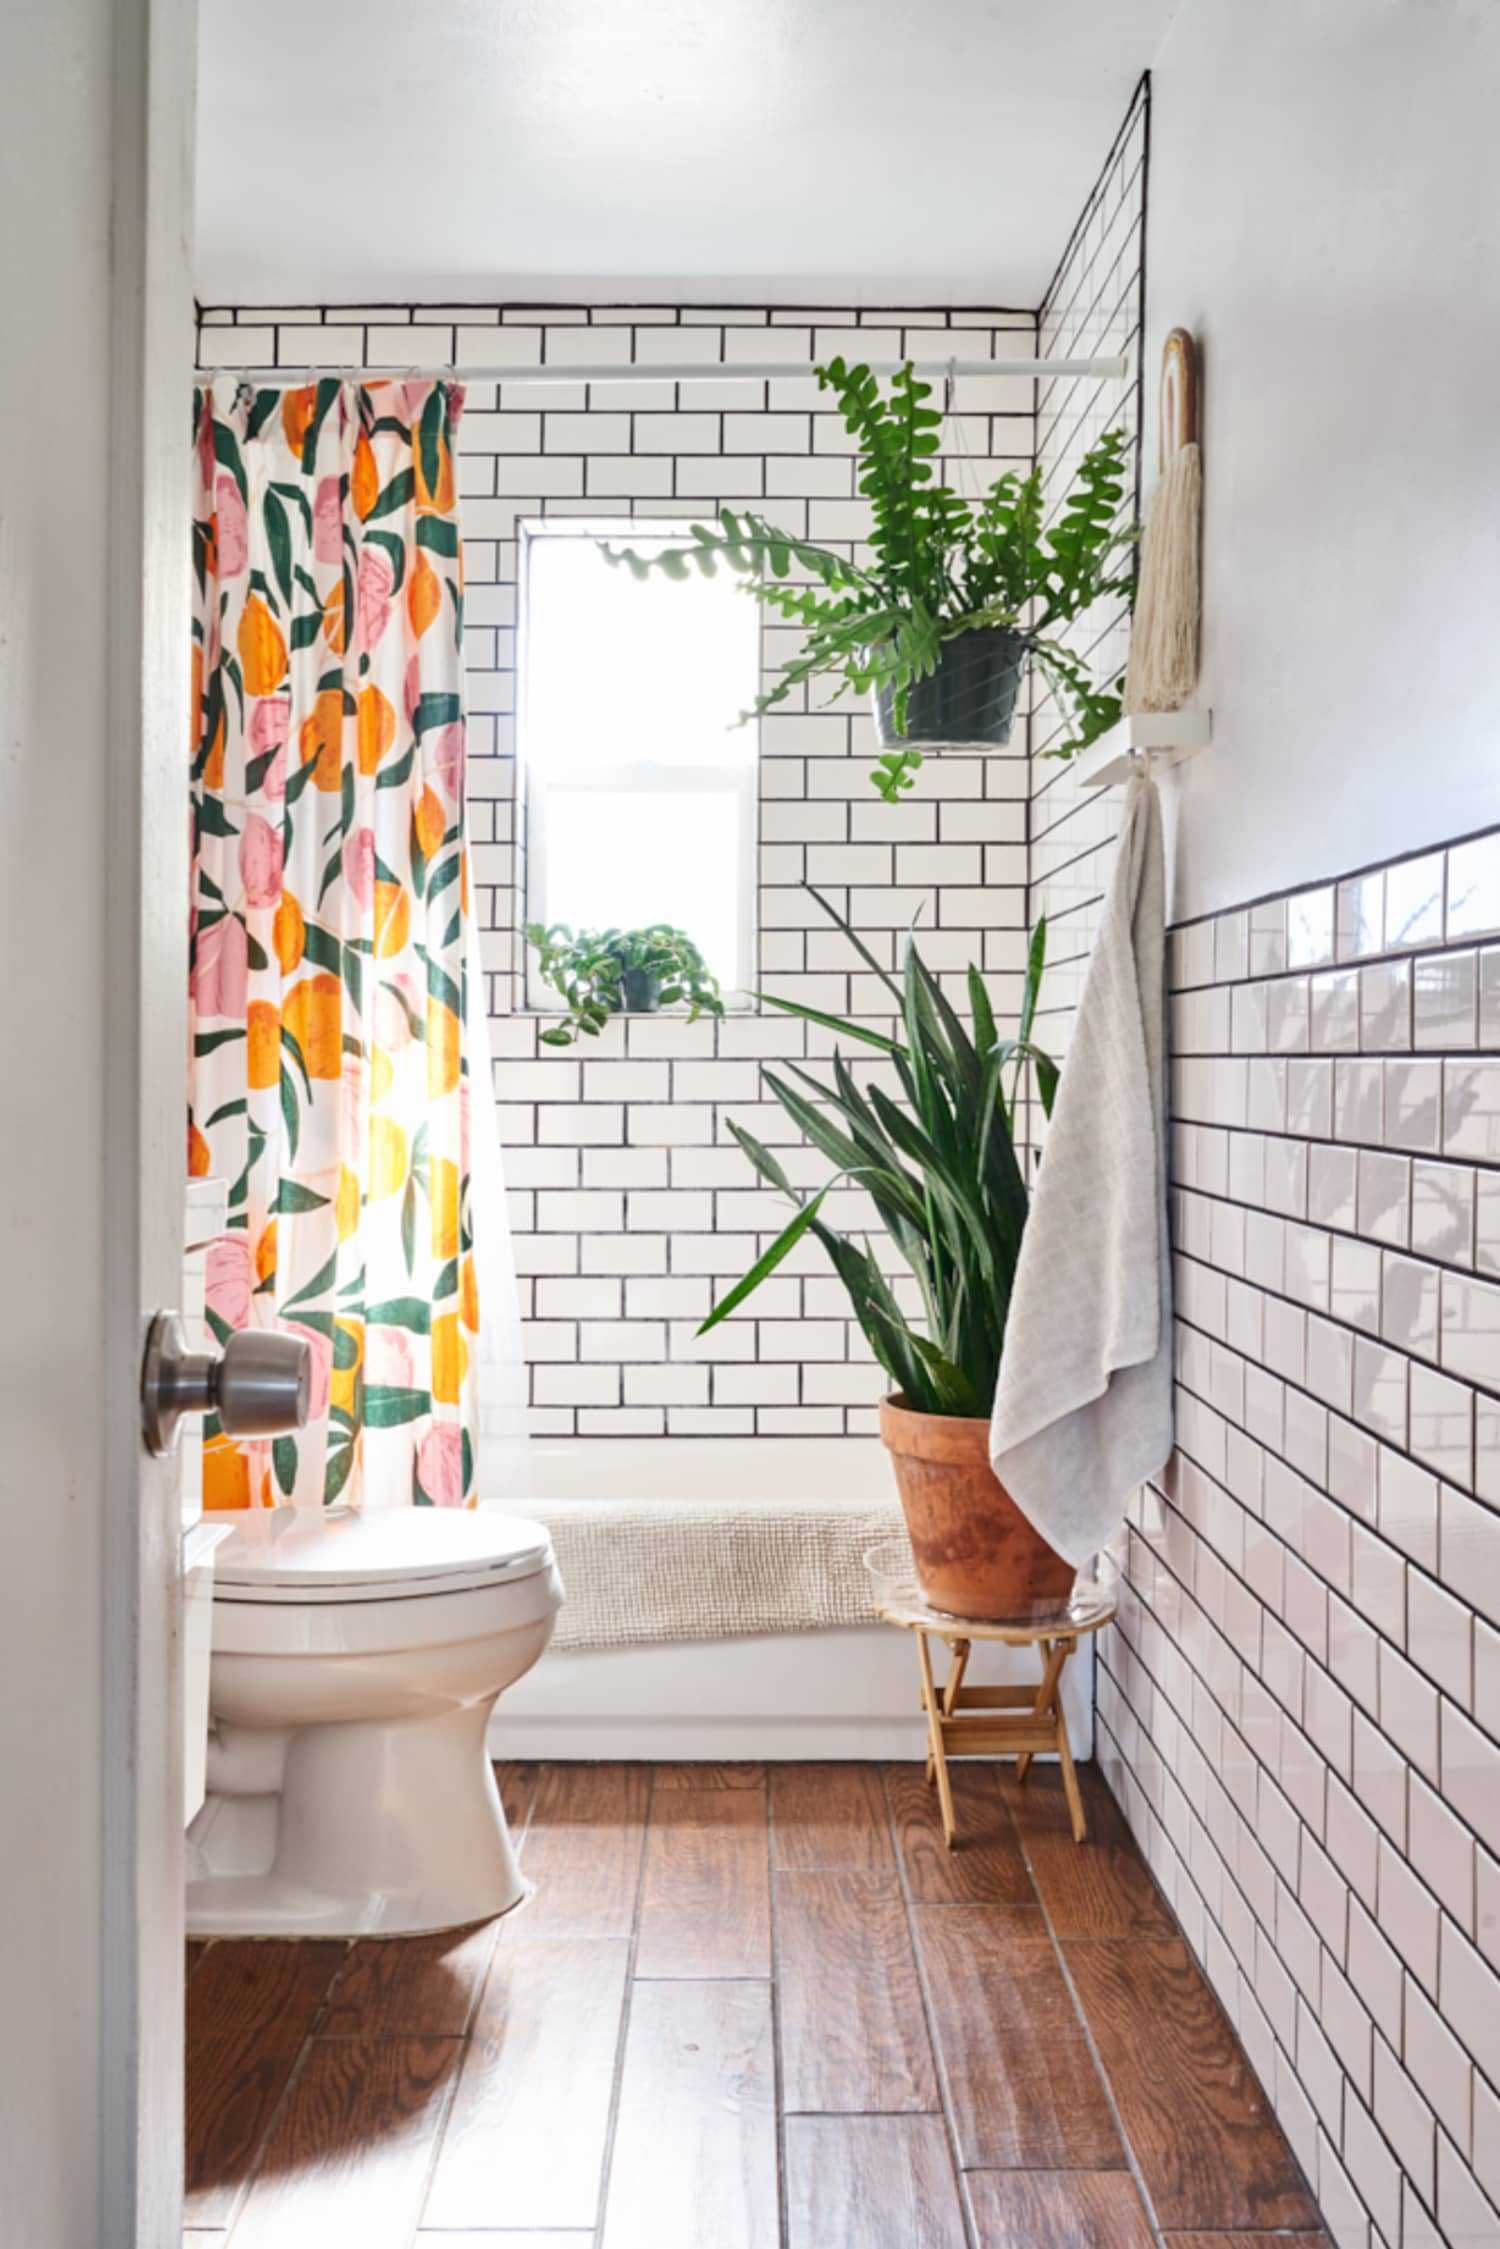 The Best Things You Can Do For Your Bathroom Under $75